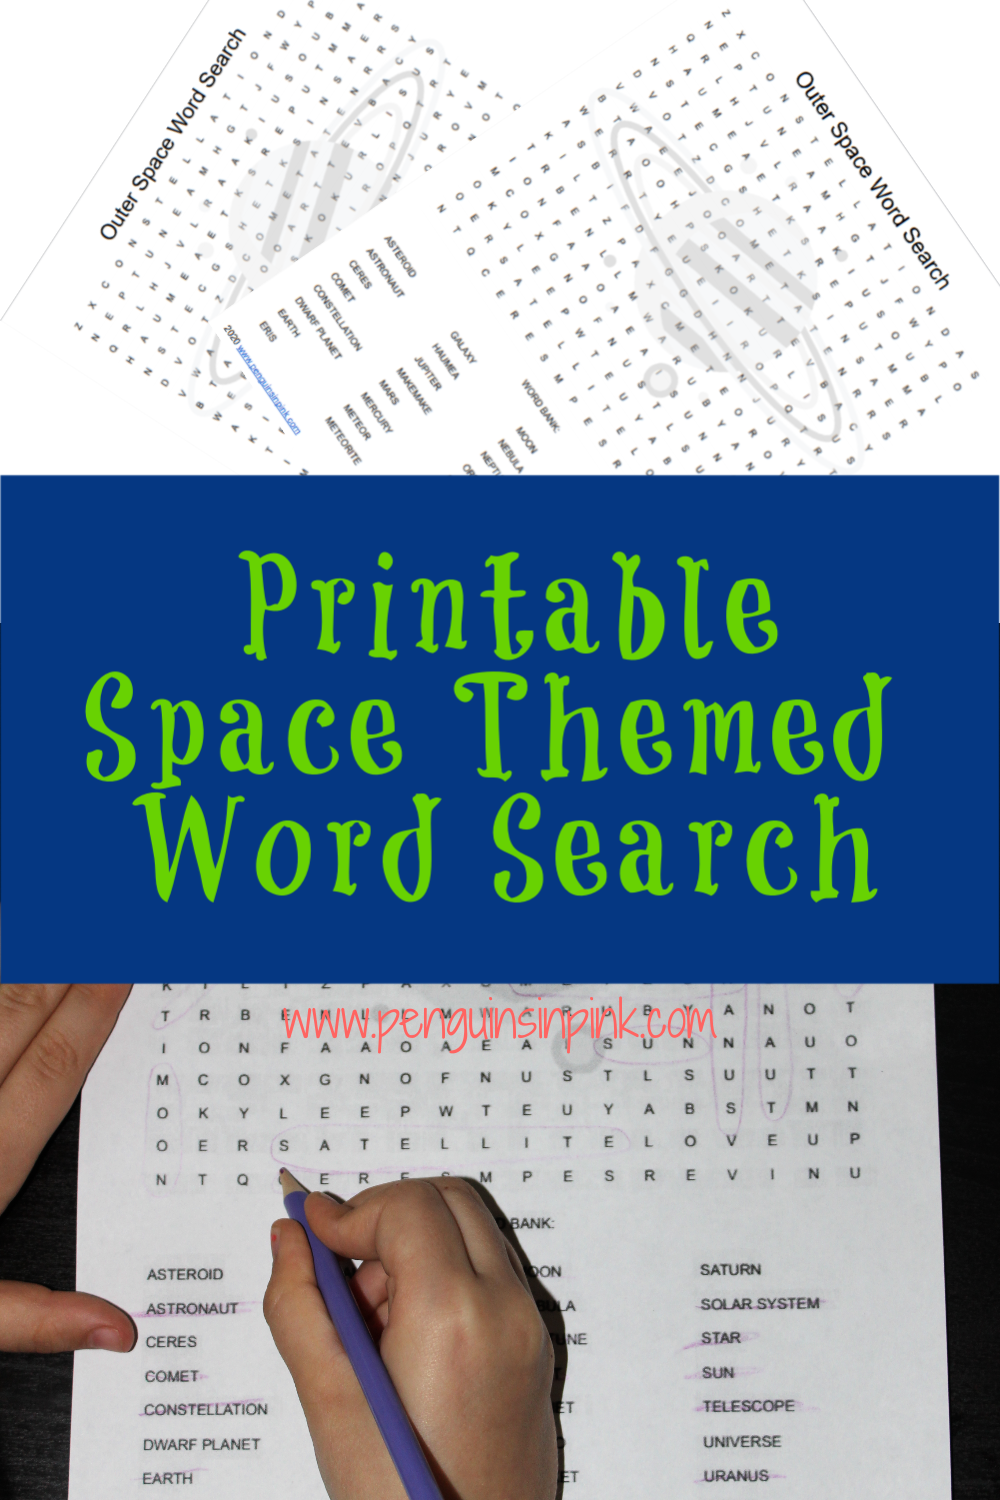 This FREE Printable Space Themed Word Search is an easy, fun way to help kids review 32 space words and terms including the planets of our solar system. Dwarf planets too! An answer key is also included.